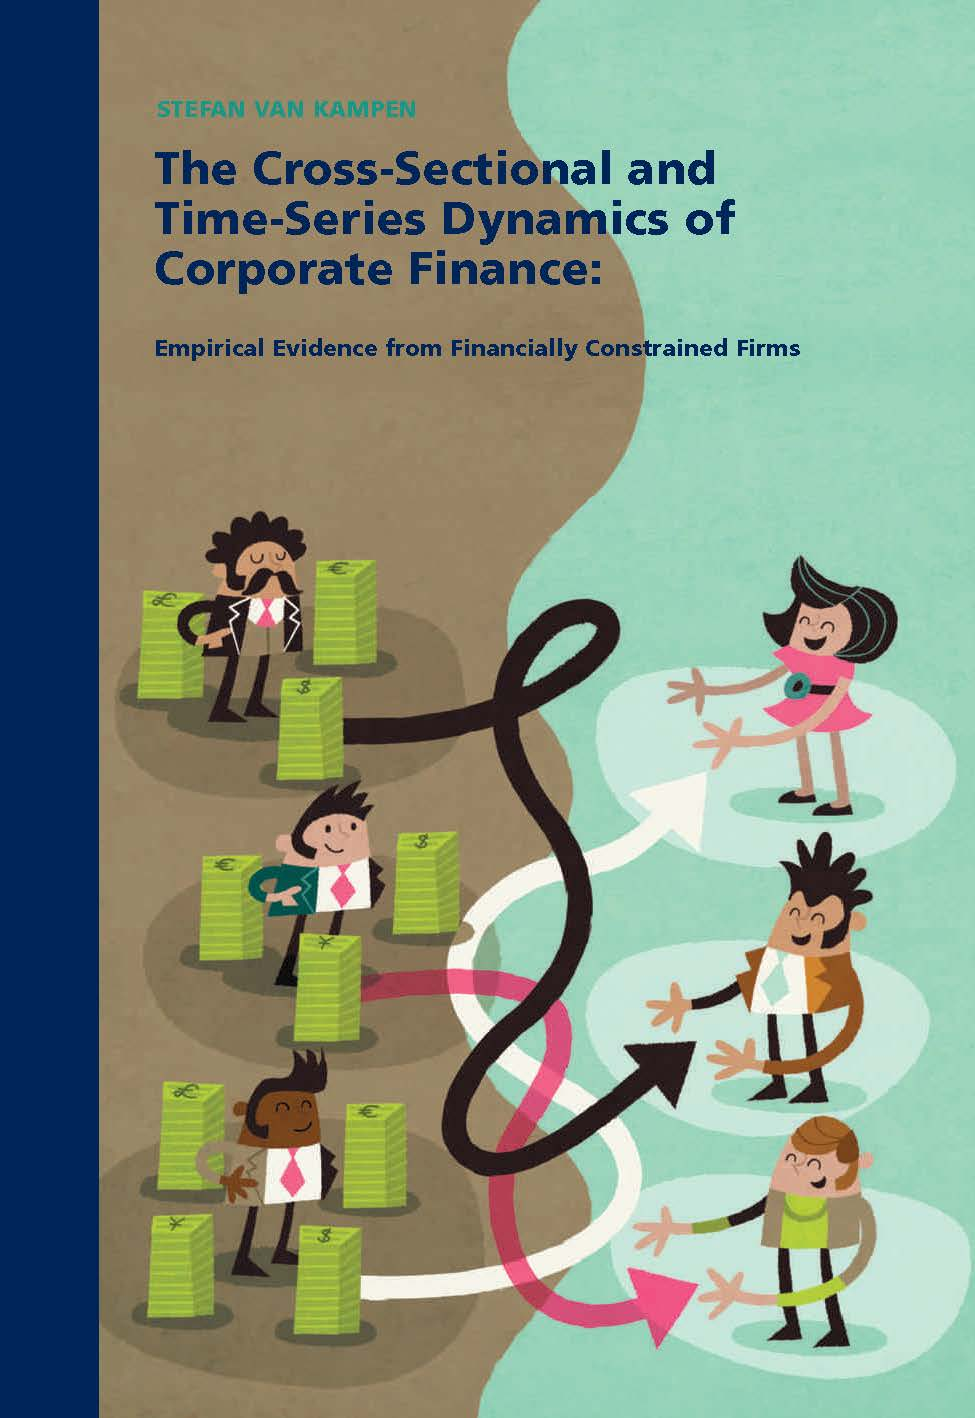 The Cross-sectional and Time-Series Dynamics of Corporate Finance: Empirical evidence from financially constrained firms